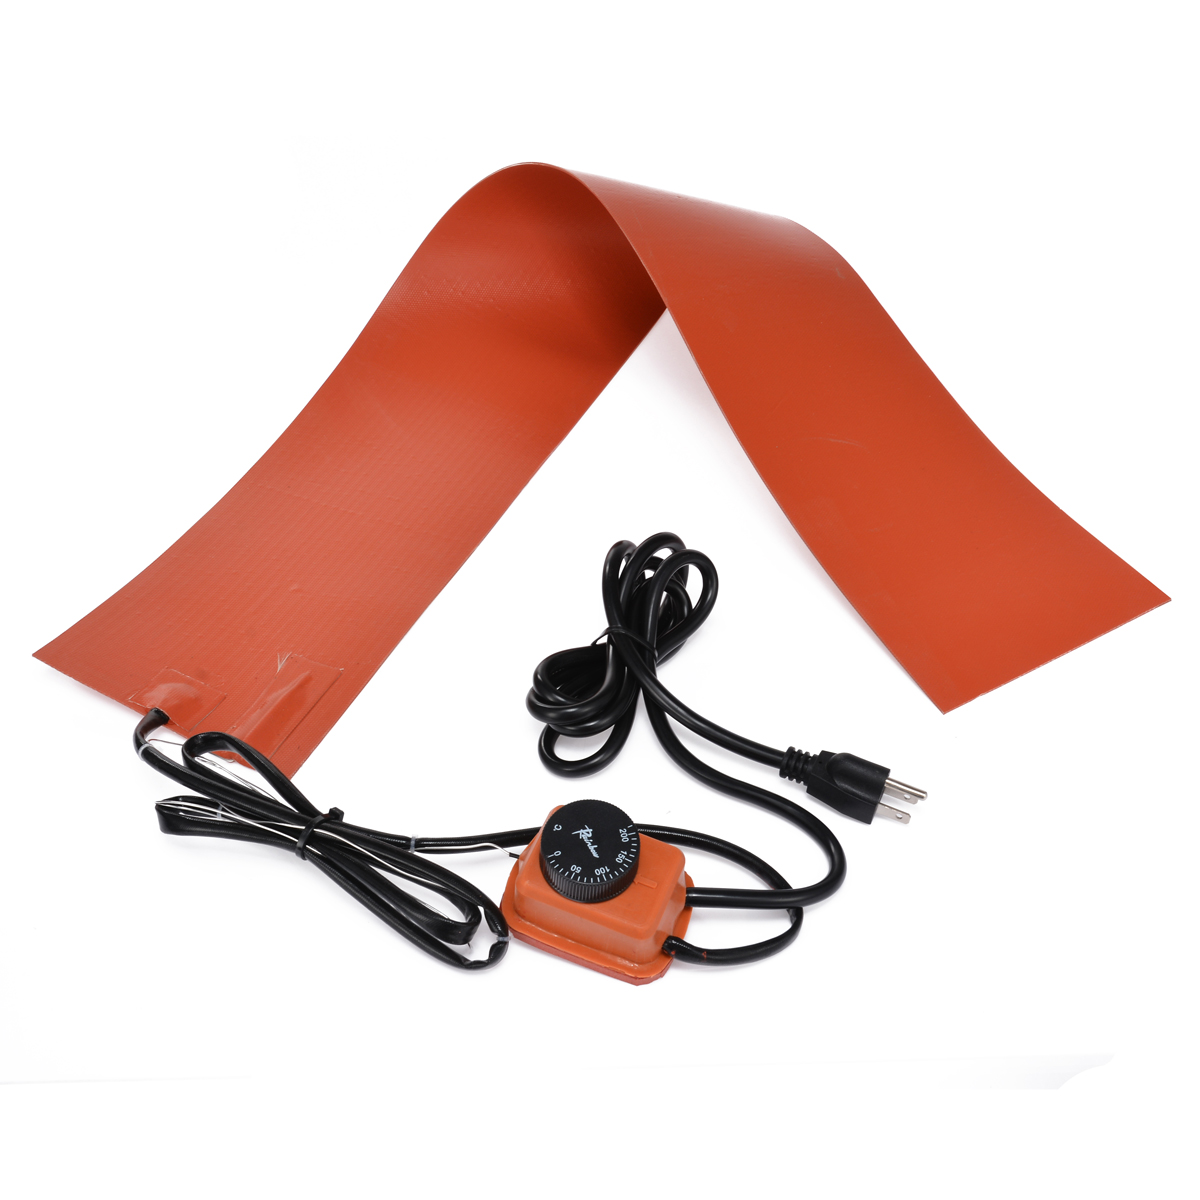 15x91.5cm 1200W 110V// 220V Silicone Heating Pad For Guitar Side Bending Parts